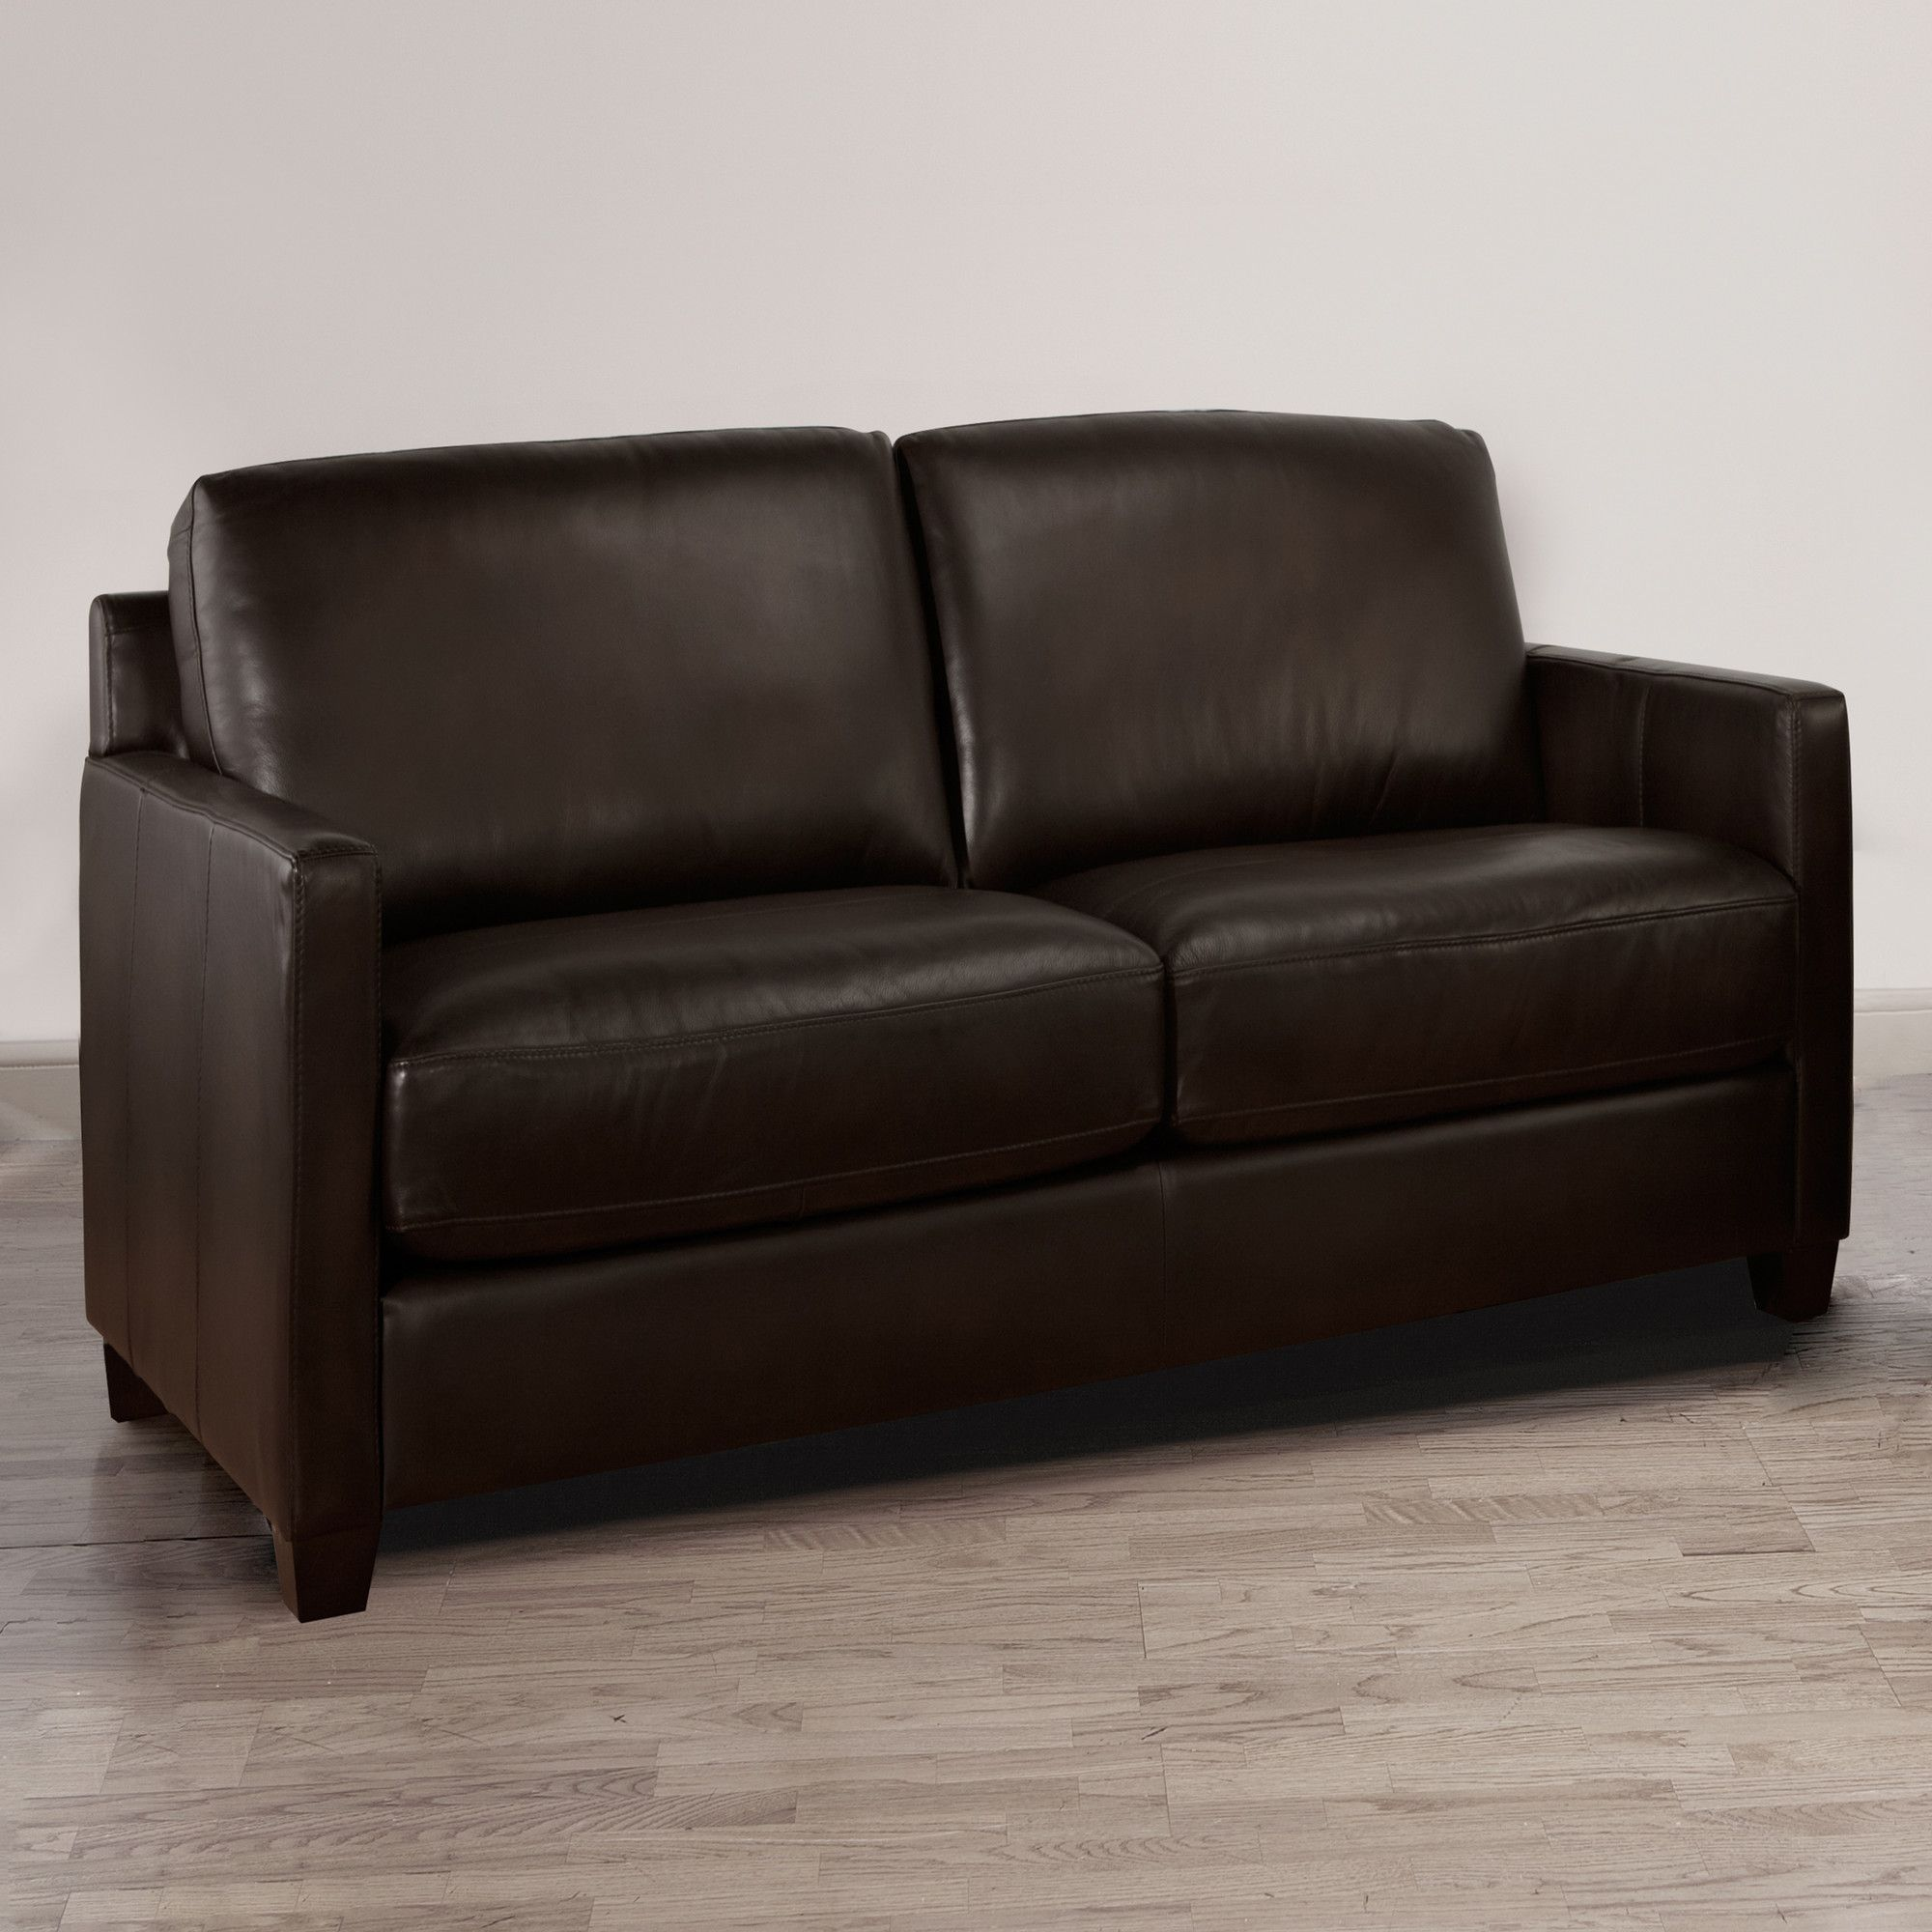 decoro baxter stationary leather loveseat products leather rh pinterest com